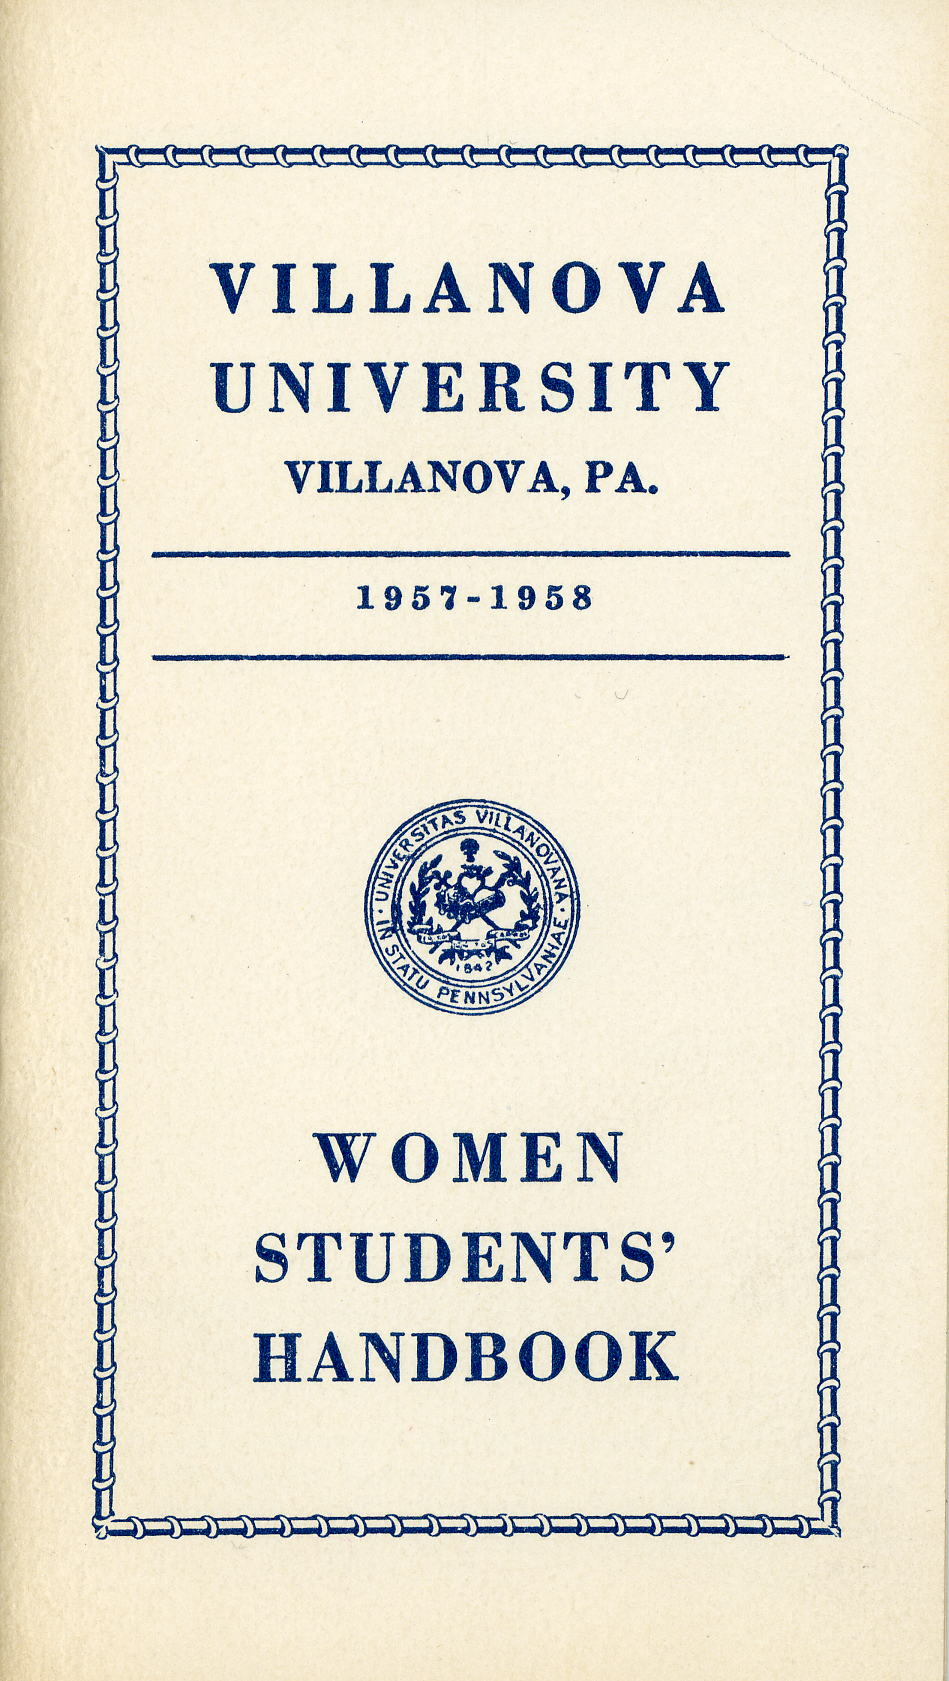 Women Students Handbook, 1957-1958